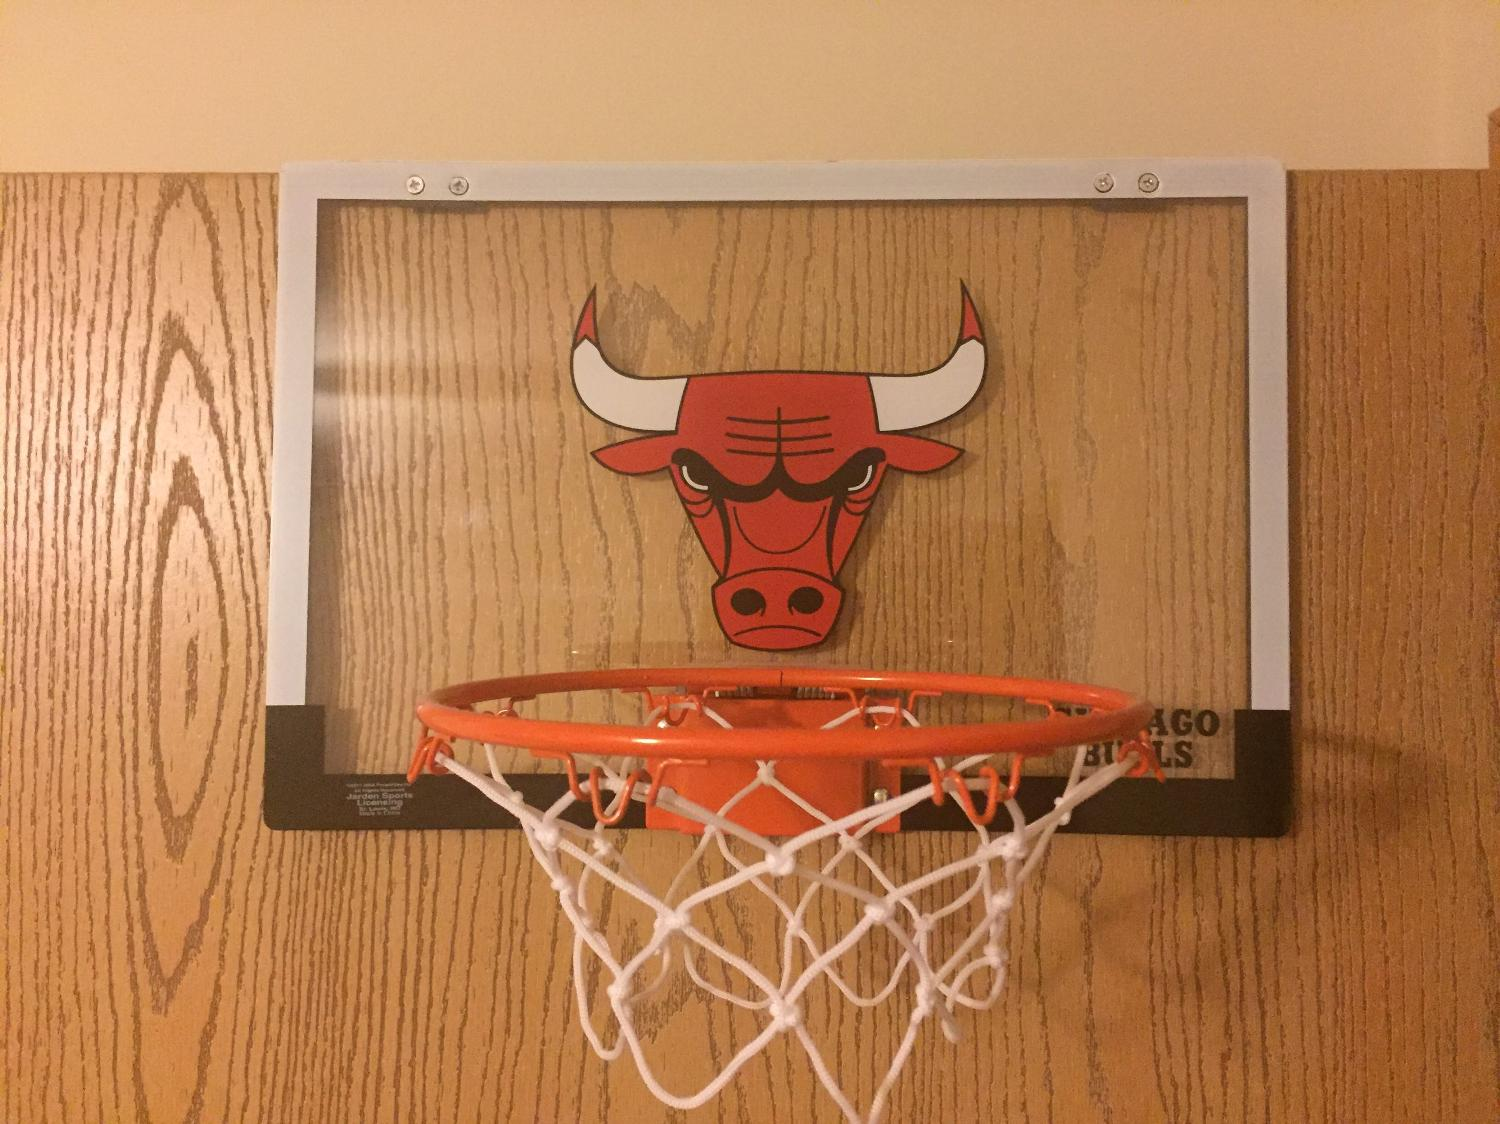 Find more nba game on indoor basketball hoop for sale at for Basketball hoop inside garage